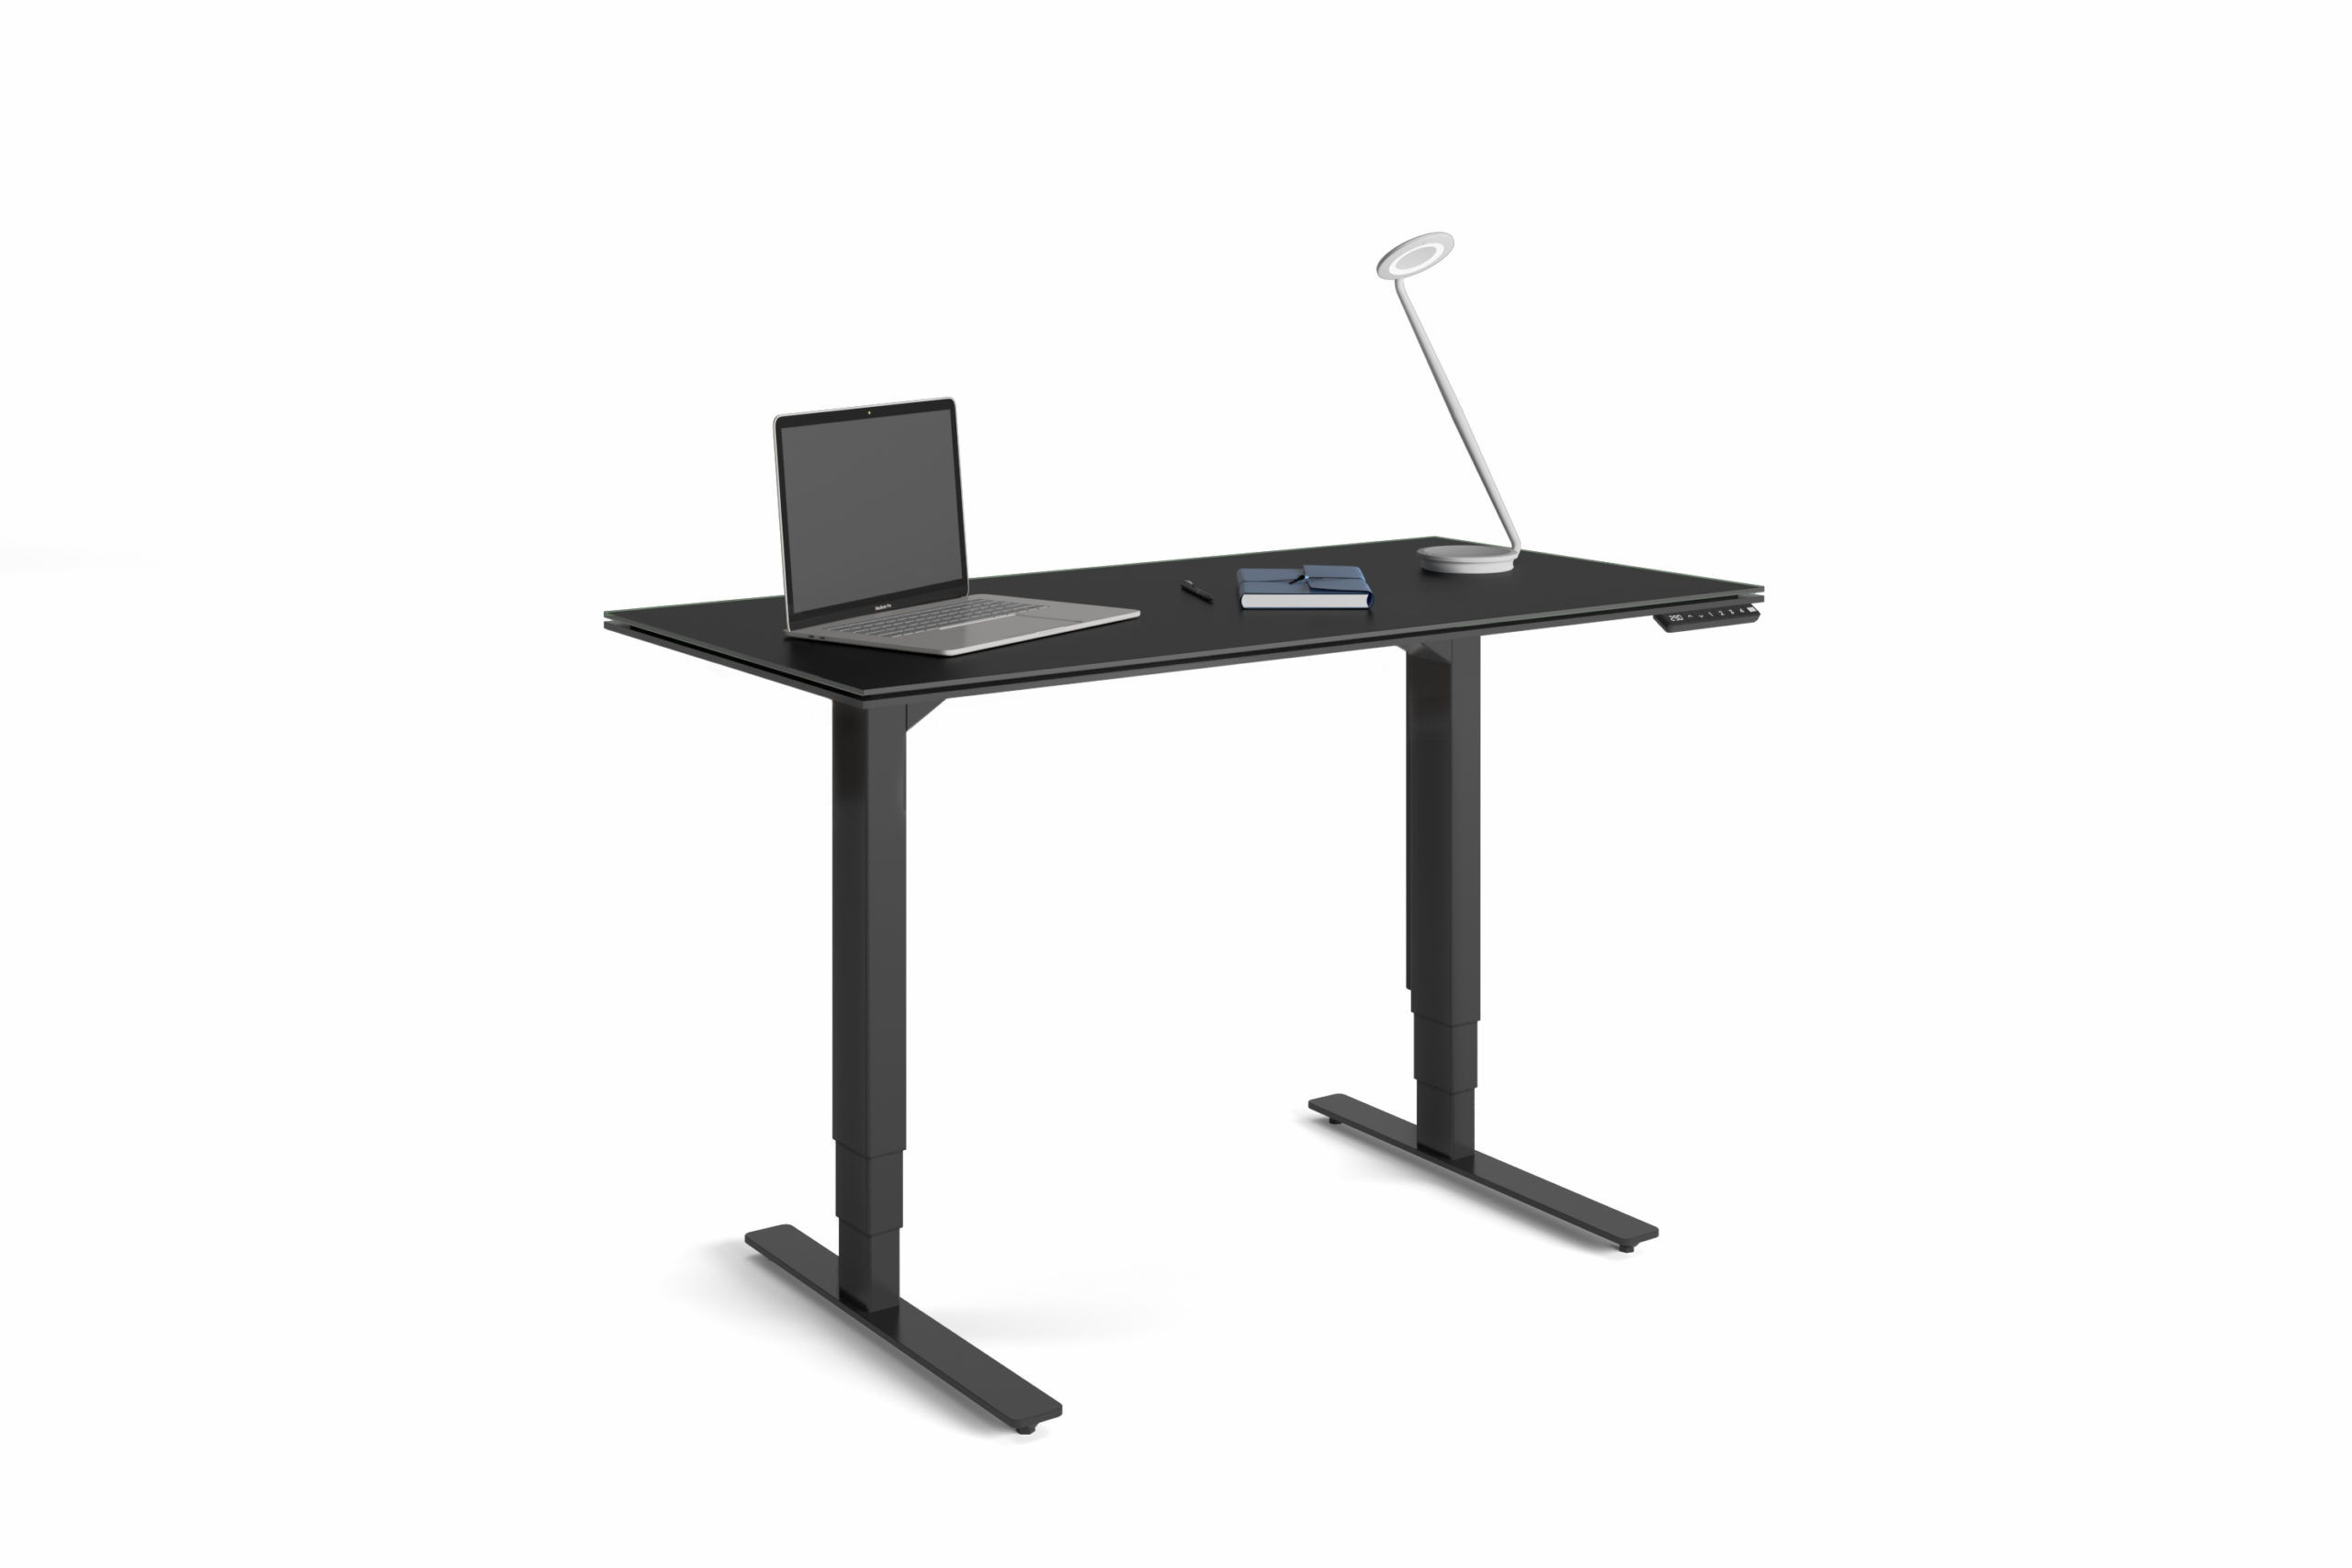 Stance 6650 Small Height Adjustable Standing Desk | BDI Furniture